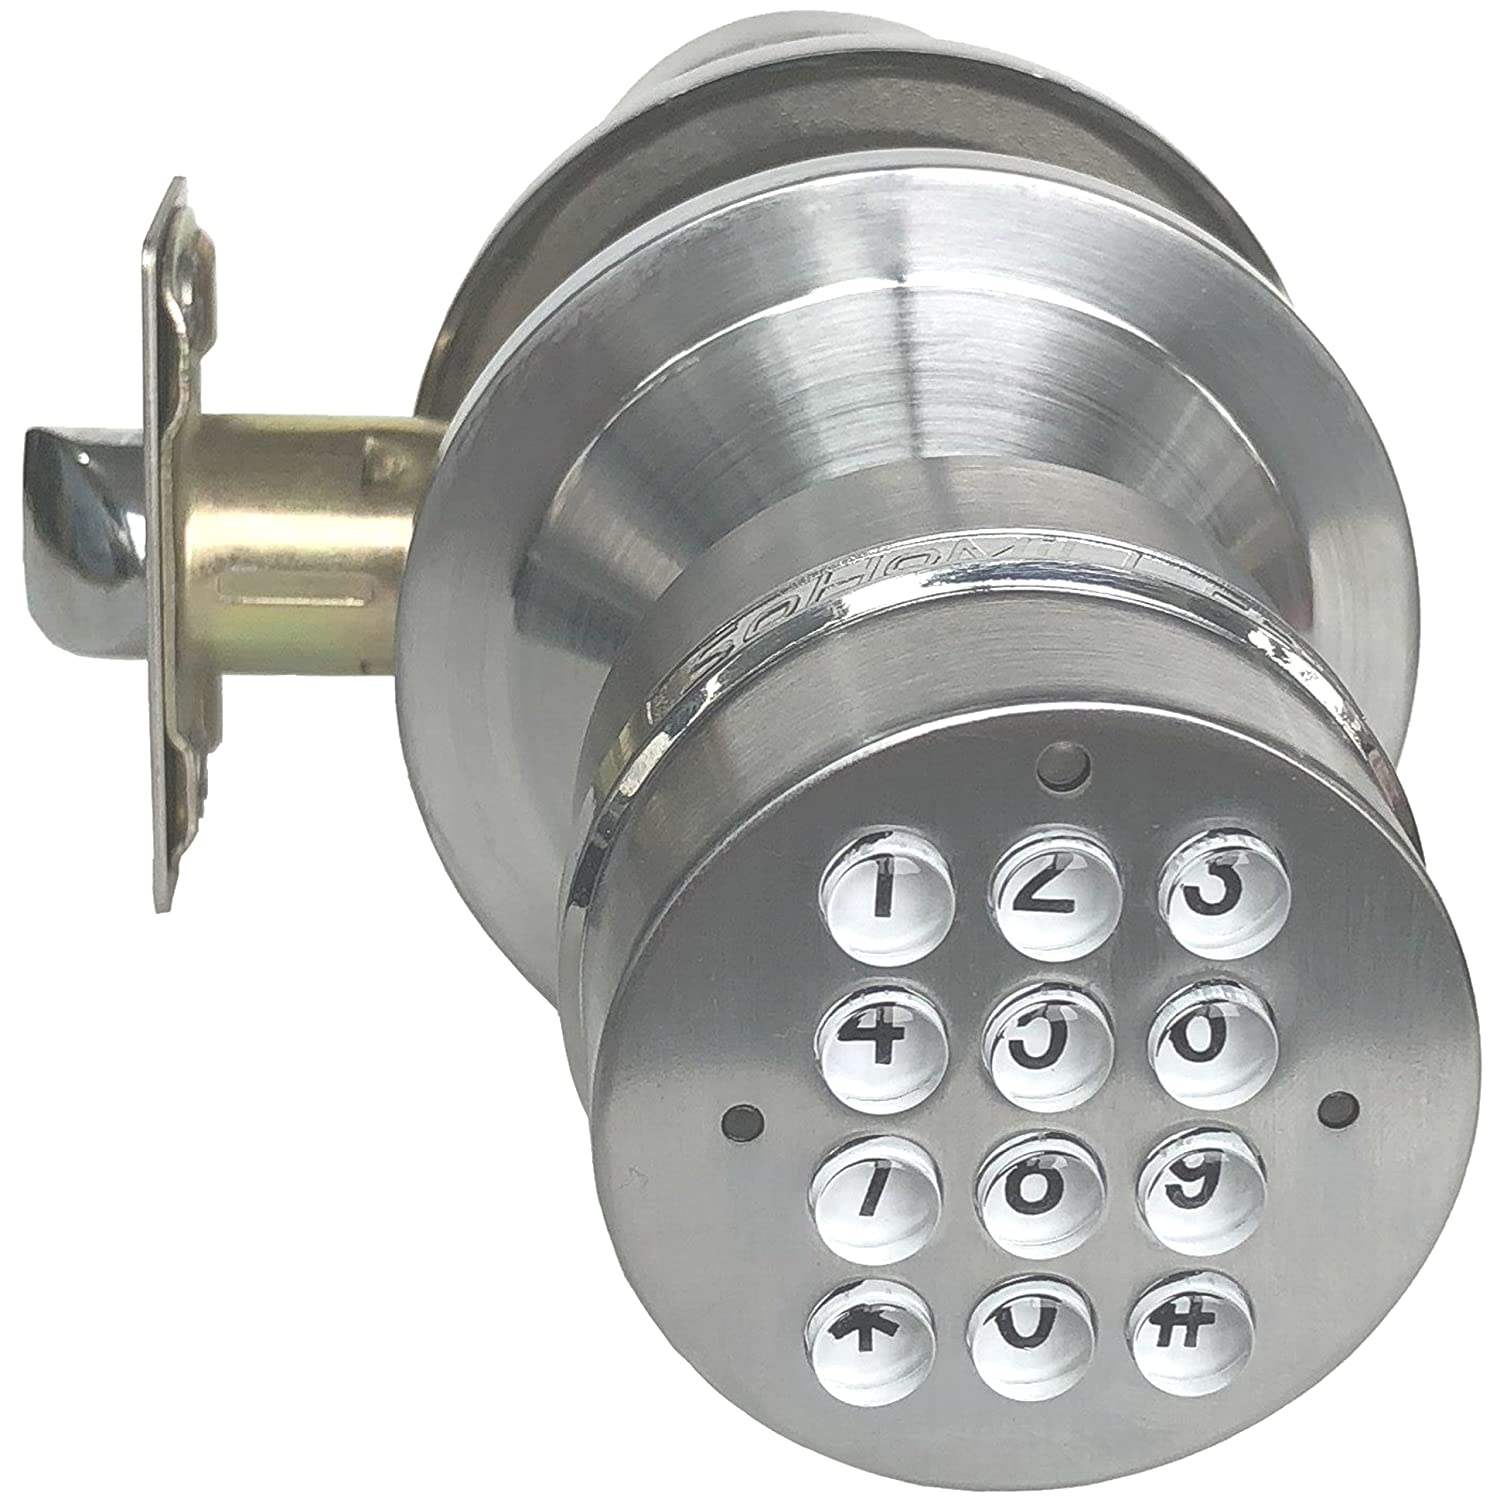 SoHoMiLL Electronic Door Knob (Spring Latch LOCK; Not Deadbolt; Not Phone Connected), single front keypad YL 99